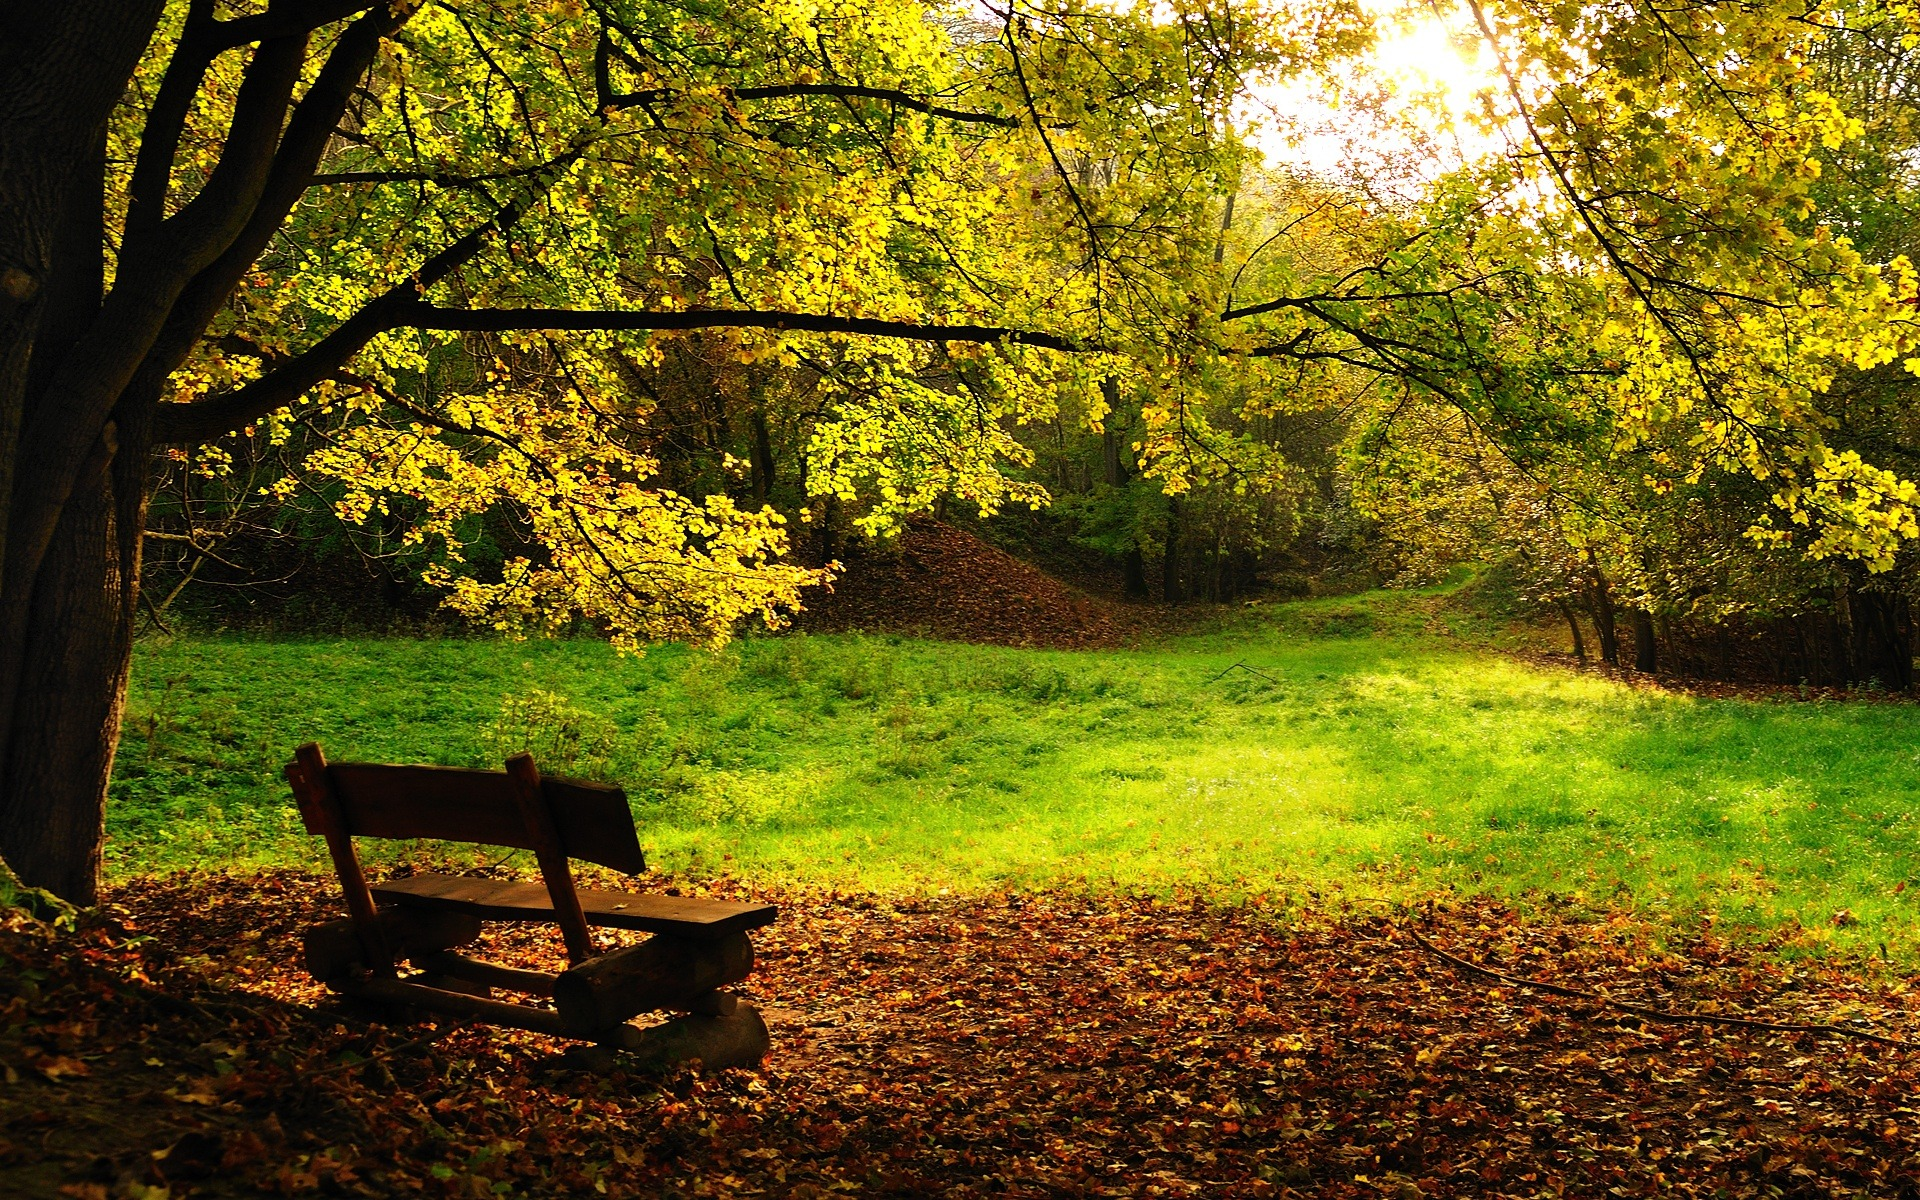 Nature wallpaper autumn trees wallpapers for free download about ...